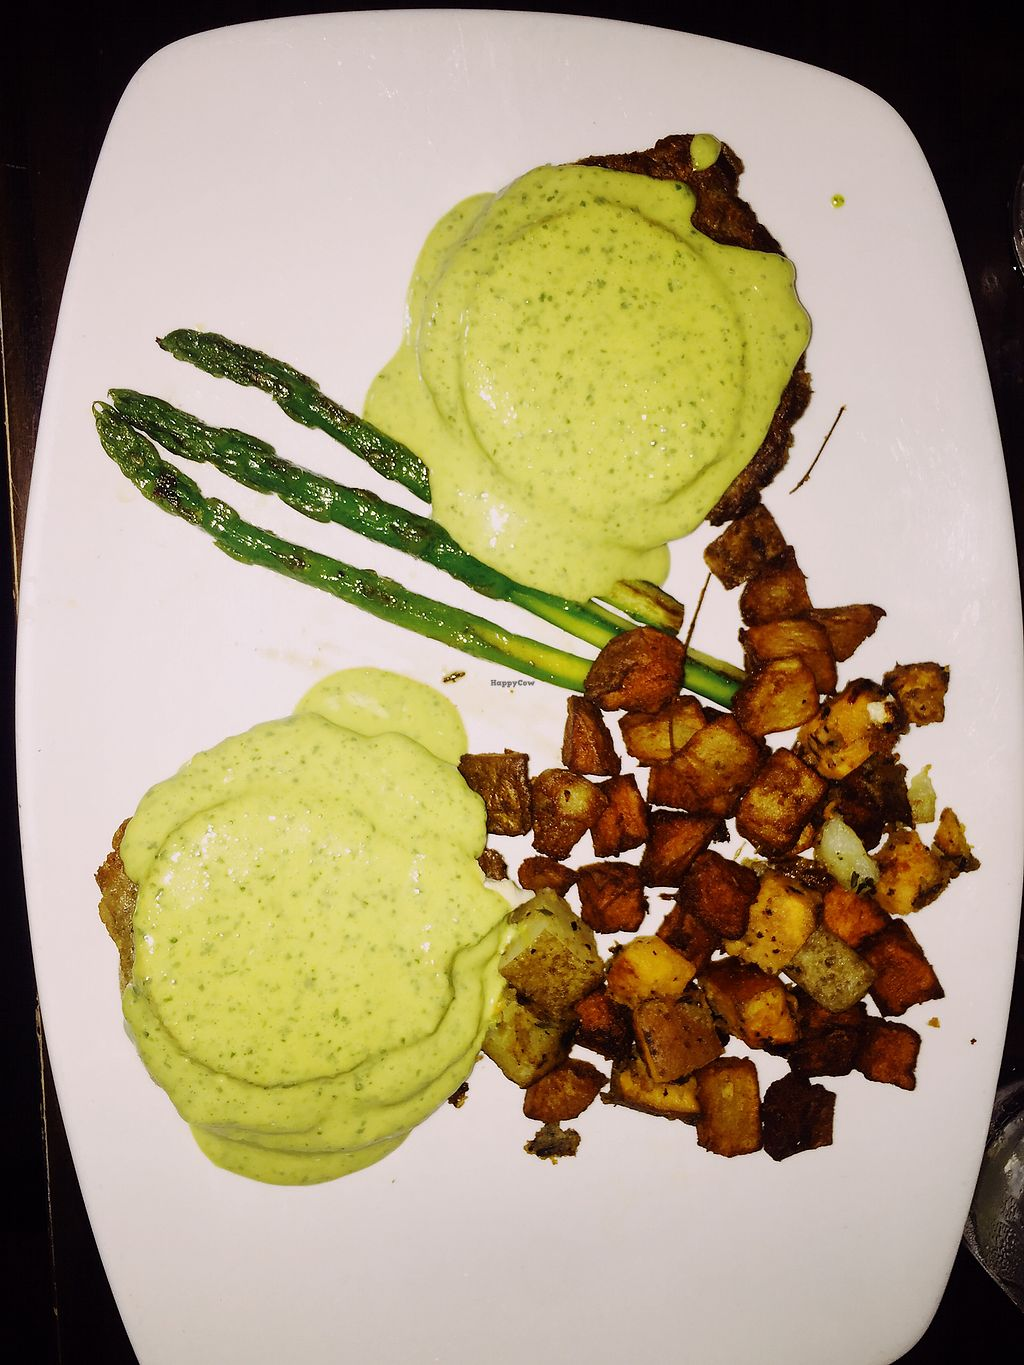 """Photo of Cafe Sunflower - Buckhead  by <a href=""""/members/profile/terrywashere"""">terrywashere</a> <br/>tofu benedict.  <br/> July 3, 2017  - <a href='/contact/abuse/image/1875/276321'>Report</a>"""